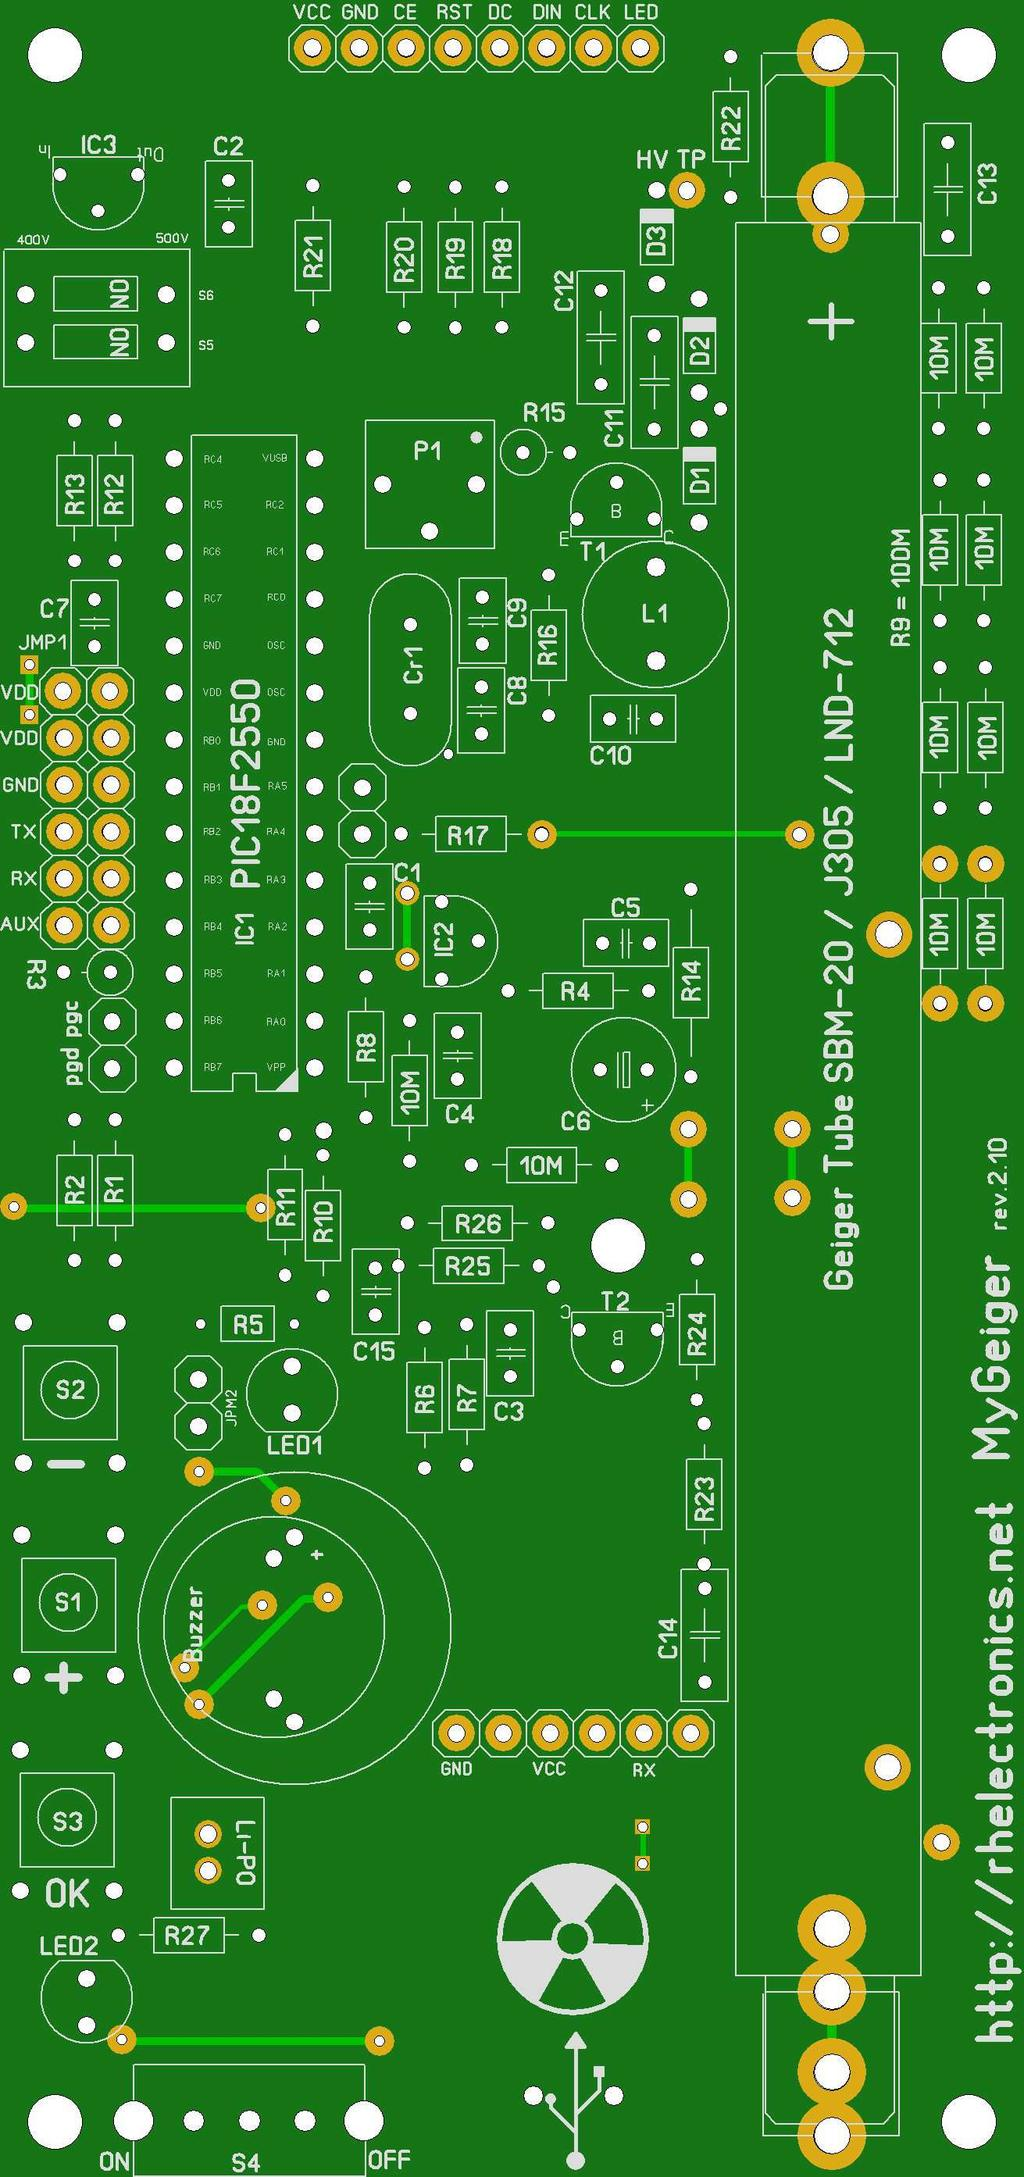 Diy Geiger Counter Module Mygeiger Ver Manual For Pcb Edition Pdf Circuit 13